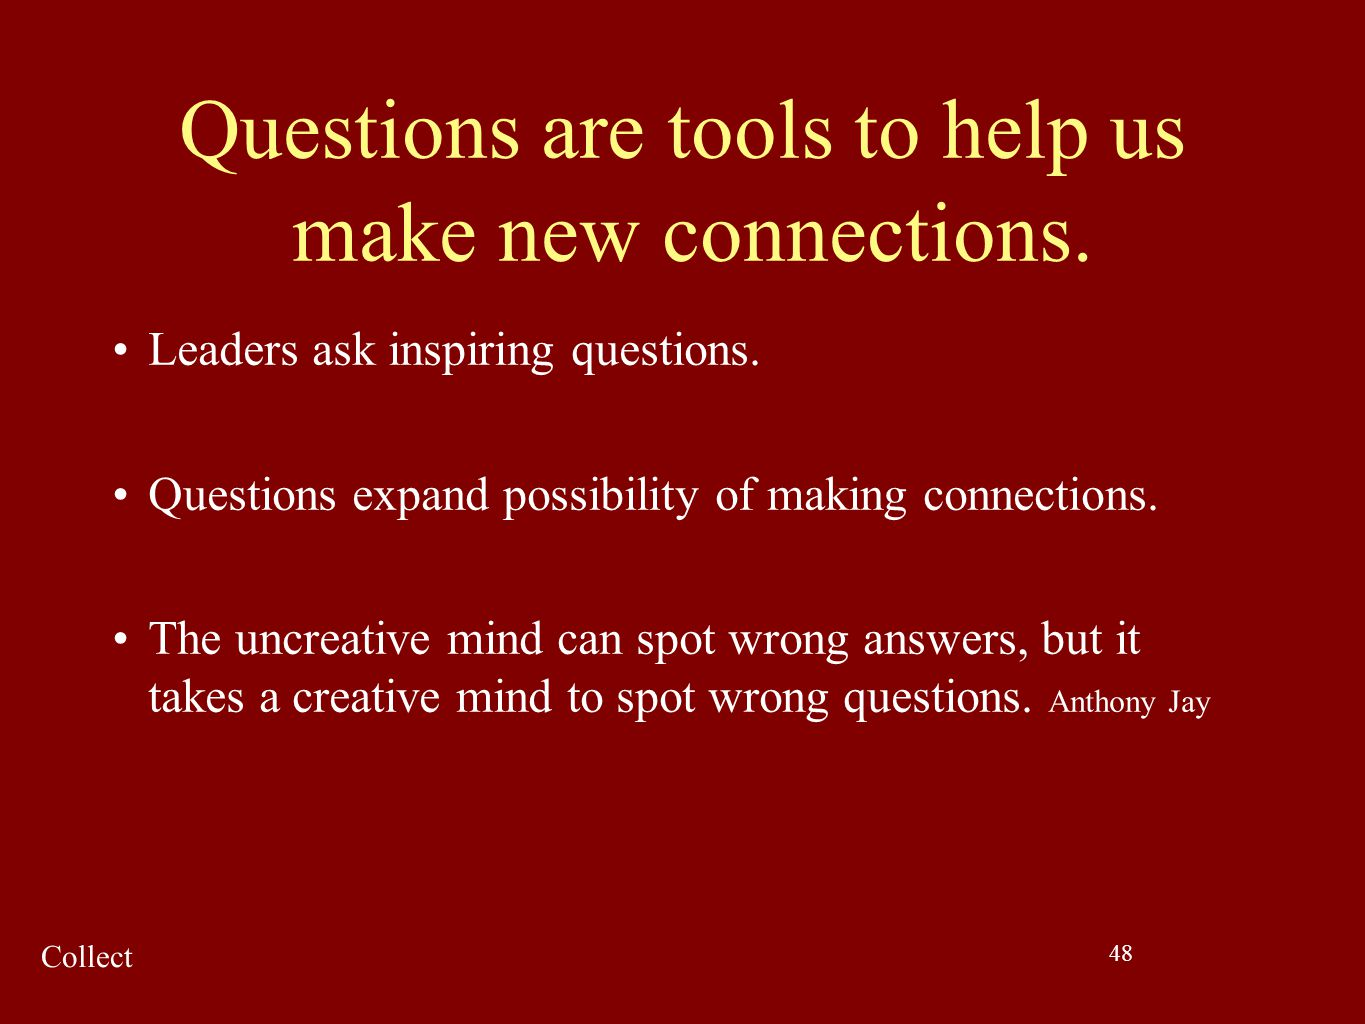 Questions are tools to help us make new connections.